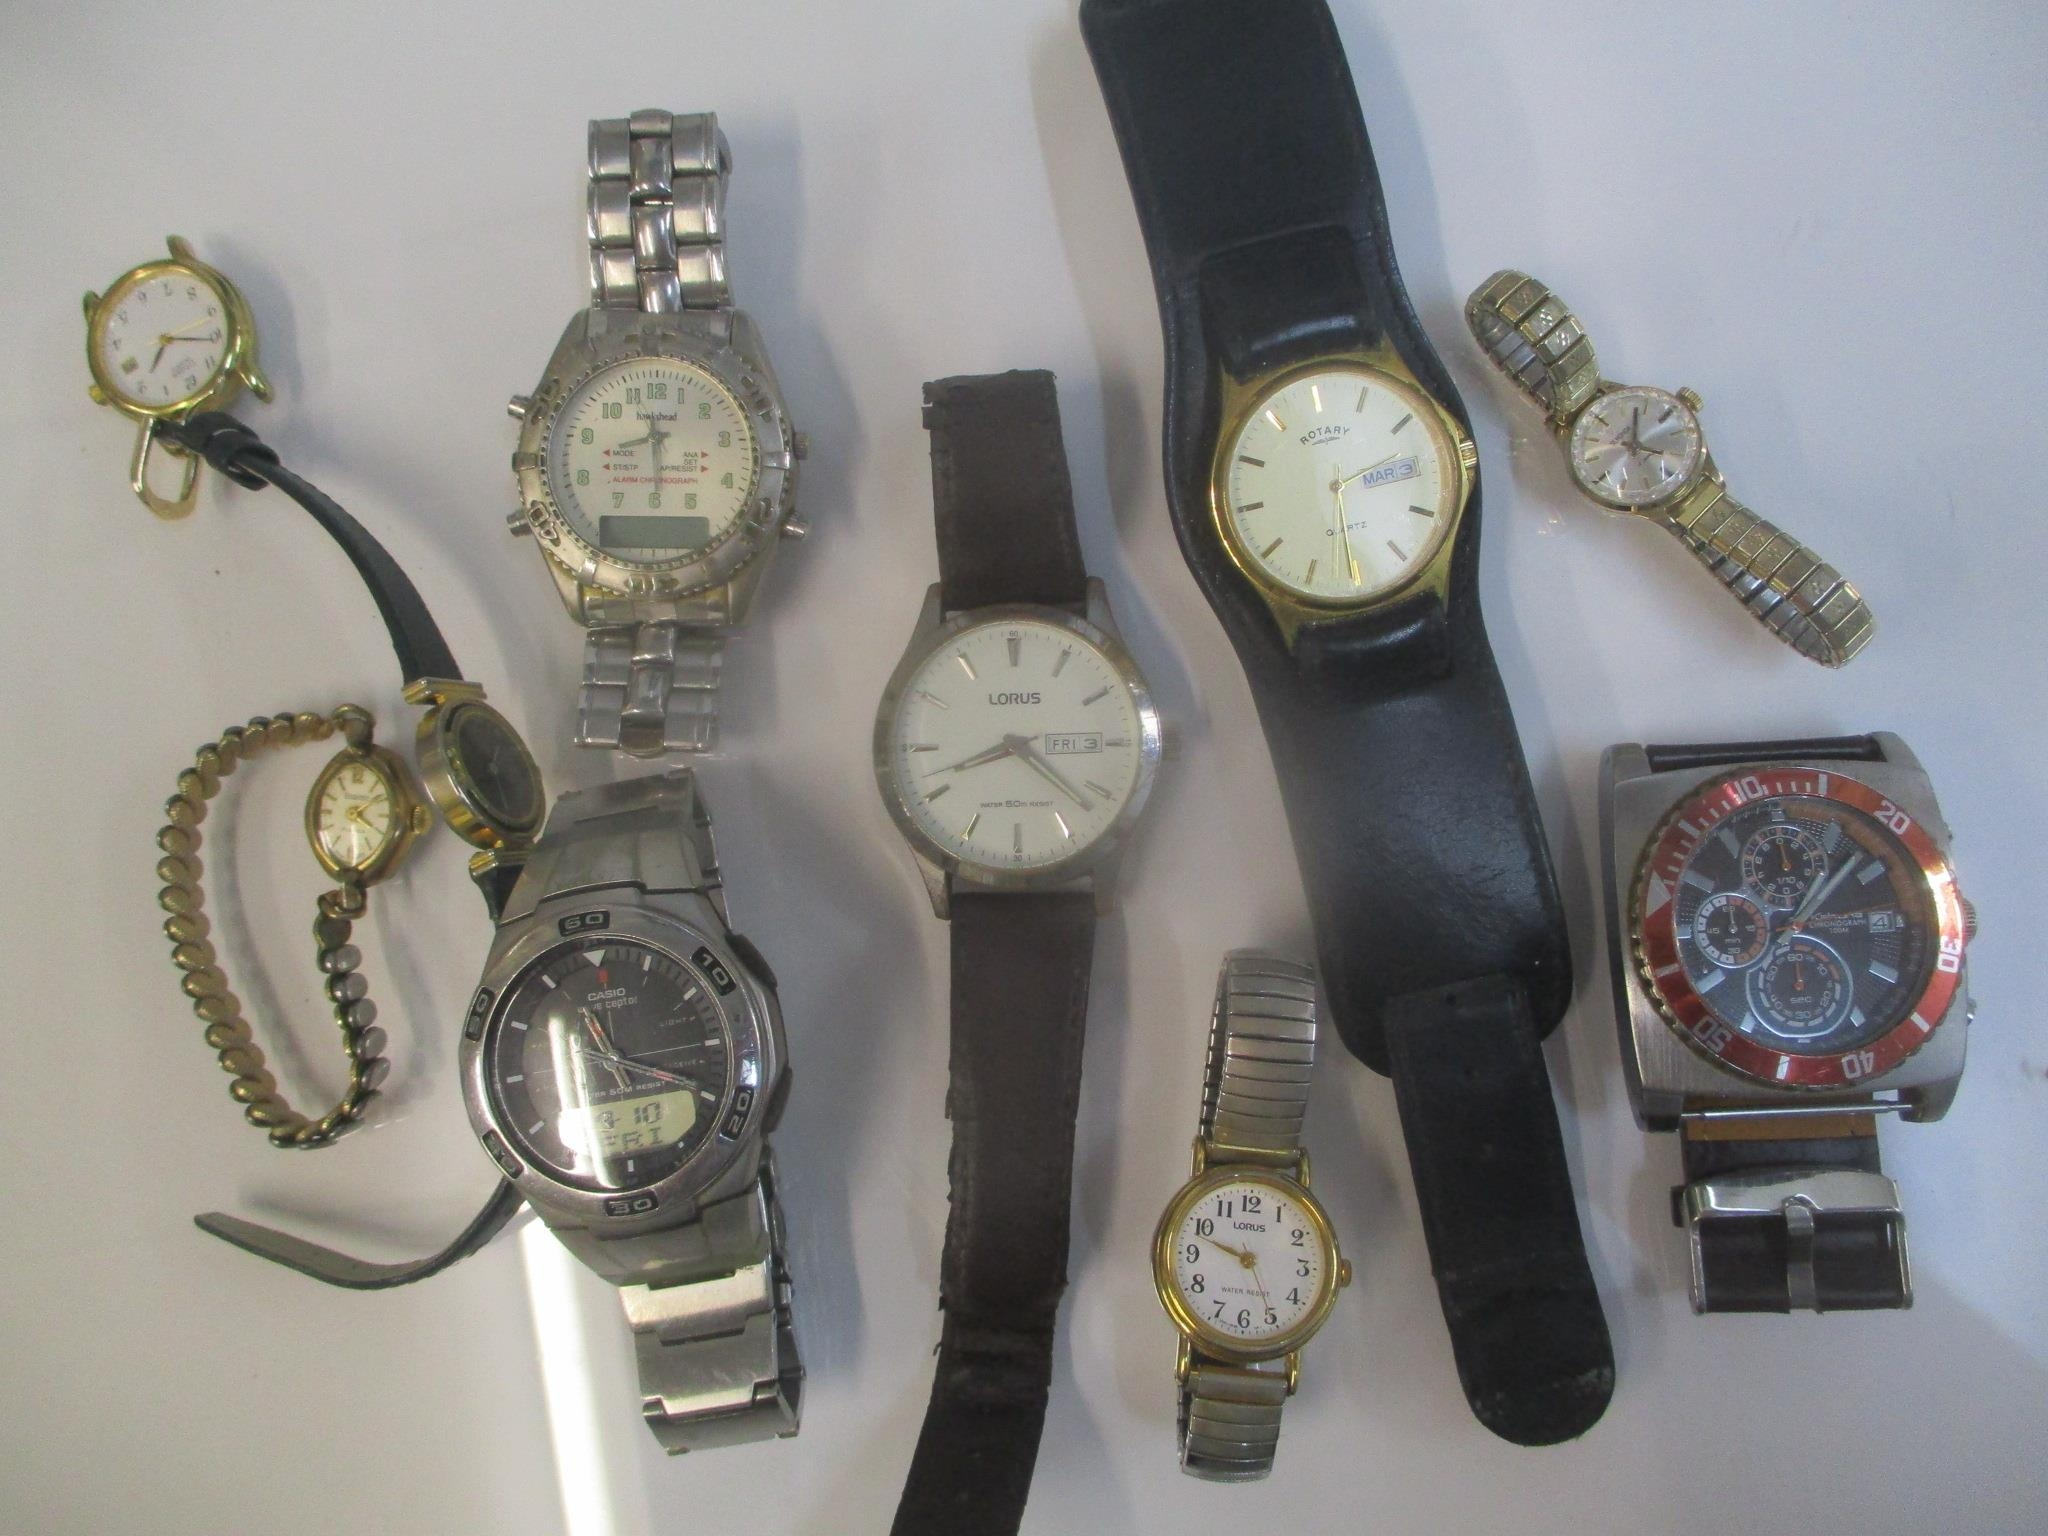 Gents wristwatches to include Kahuna, Lotus, Casio, Rotary and others